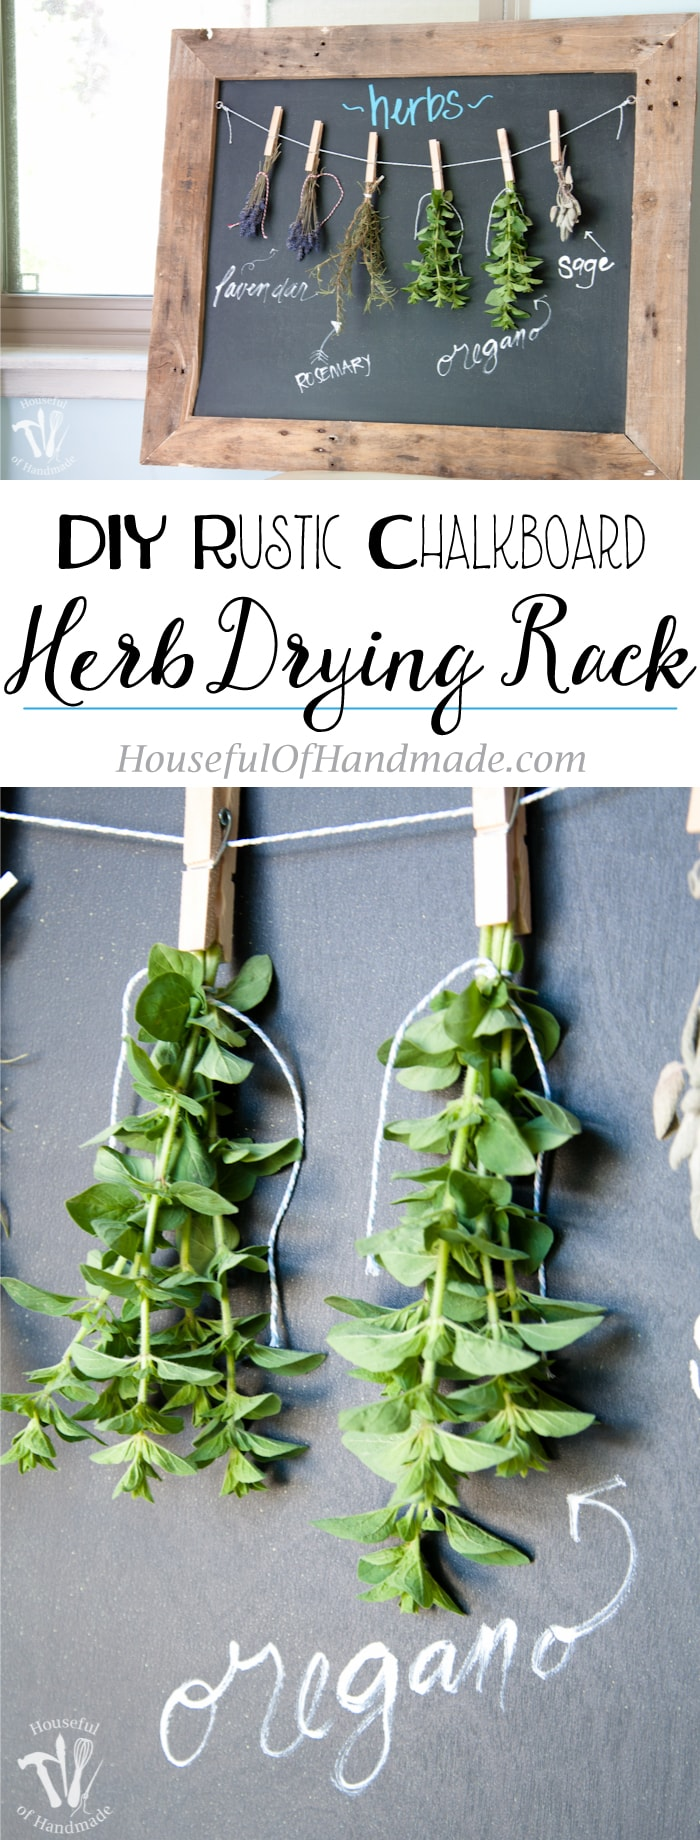 Make drying your herbs a part of your decor with this DIY rustic chalkboard herb drying rack. It's made from an old palette and makes preserving herbs beautiful. | Housefulofhandmade.com #herbs #chalkboard #diy #woodworking #palletwood